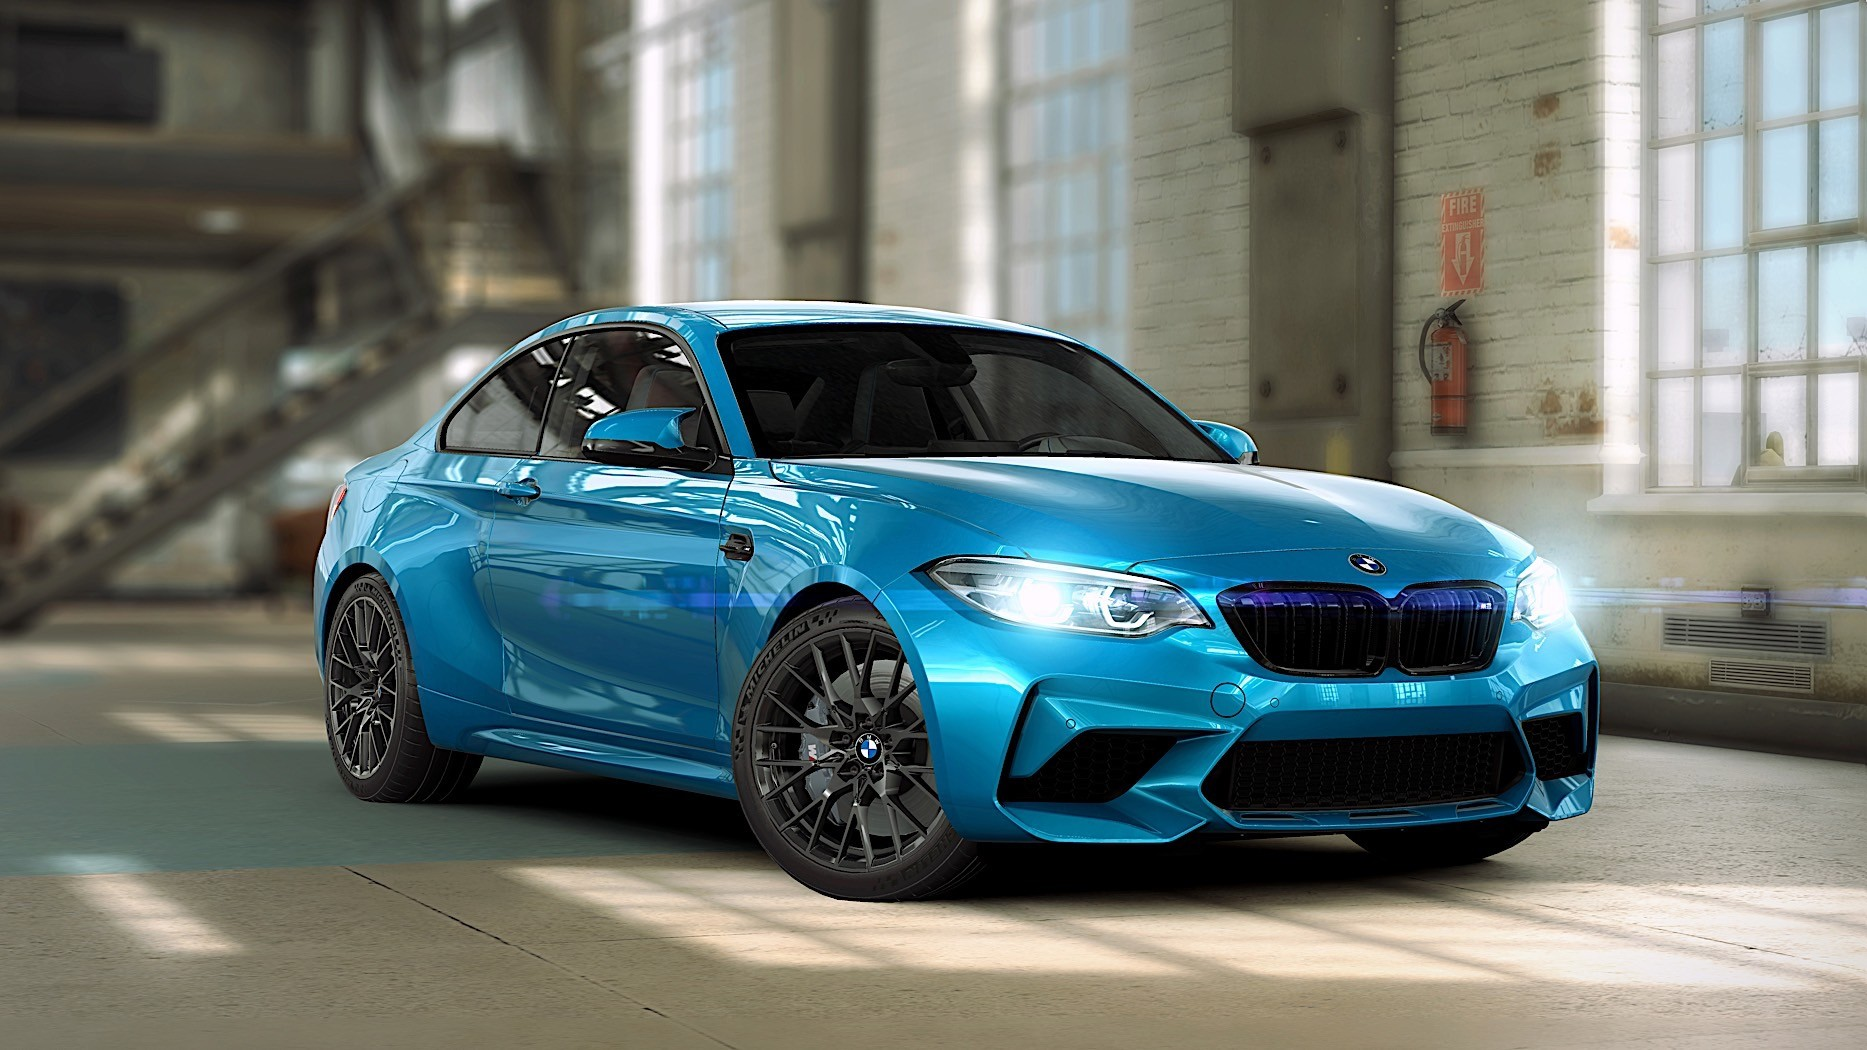 csr racing 2 mobile game now features the bmw m2 competition autoevolution. Black Bedroom Furniture Sets. Home Design Ideas